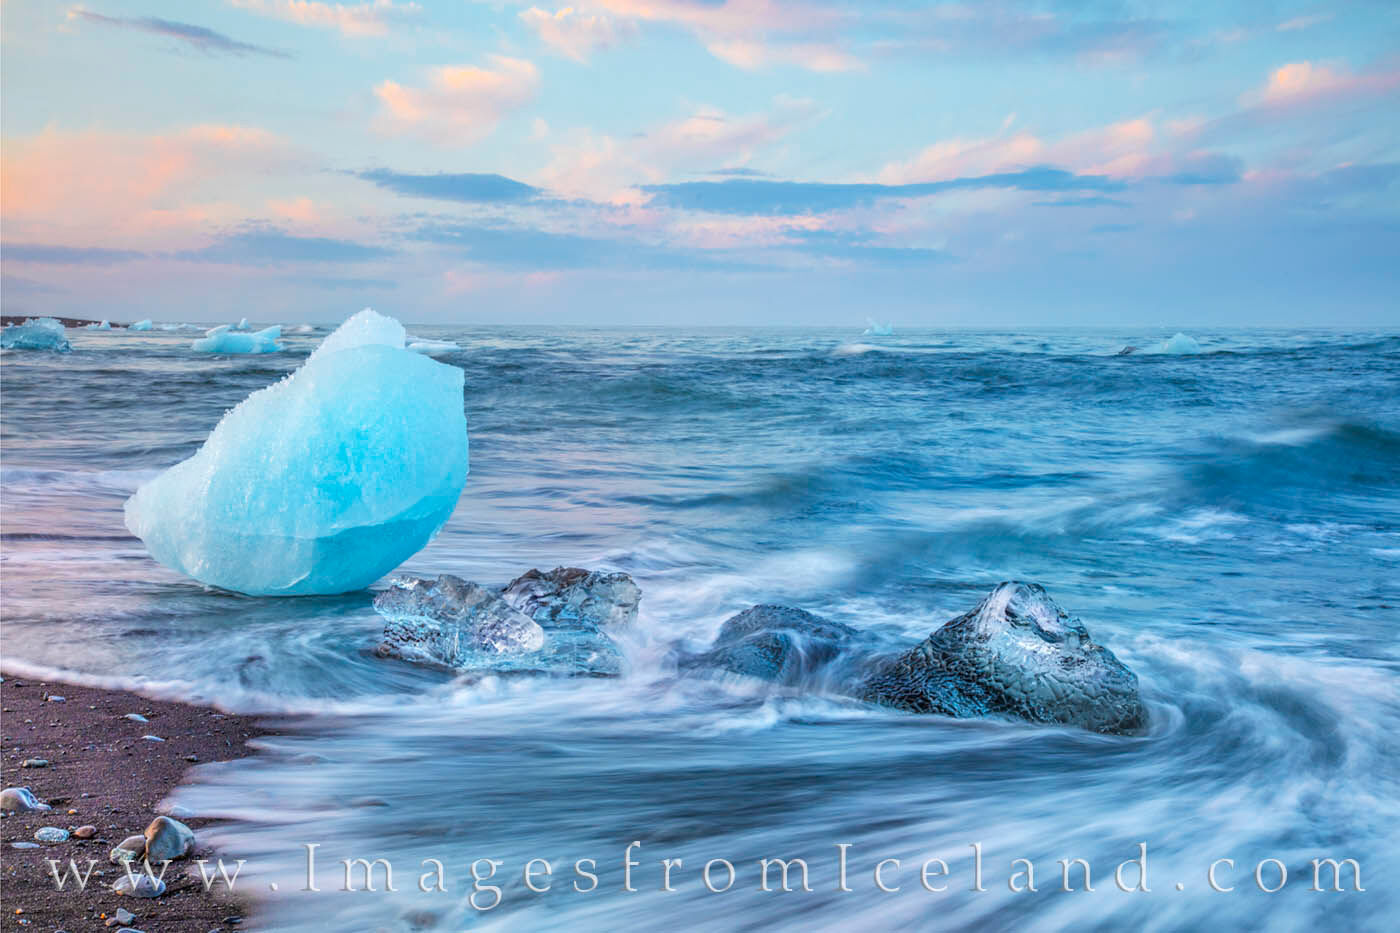 The swirling waves of the North Atlantic Ocean wash up icebergs onto Diamond Beach. These beautiful chunks of ice break off from...